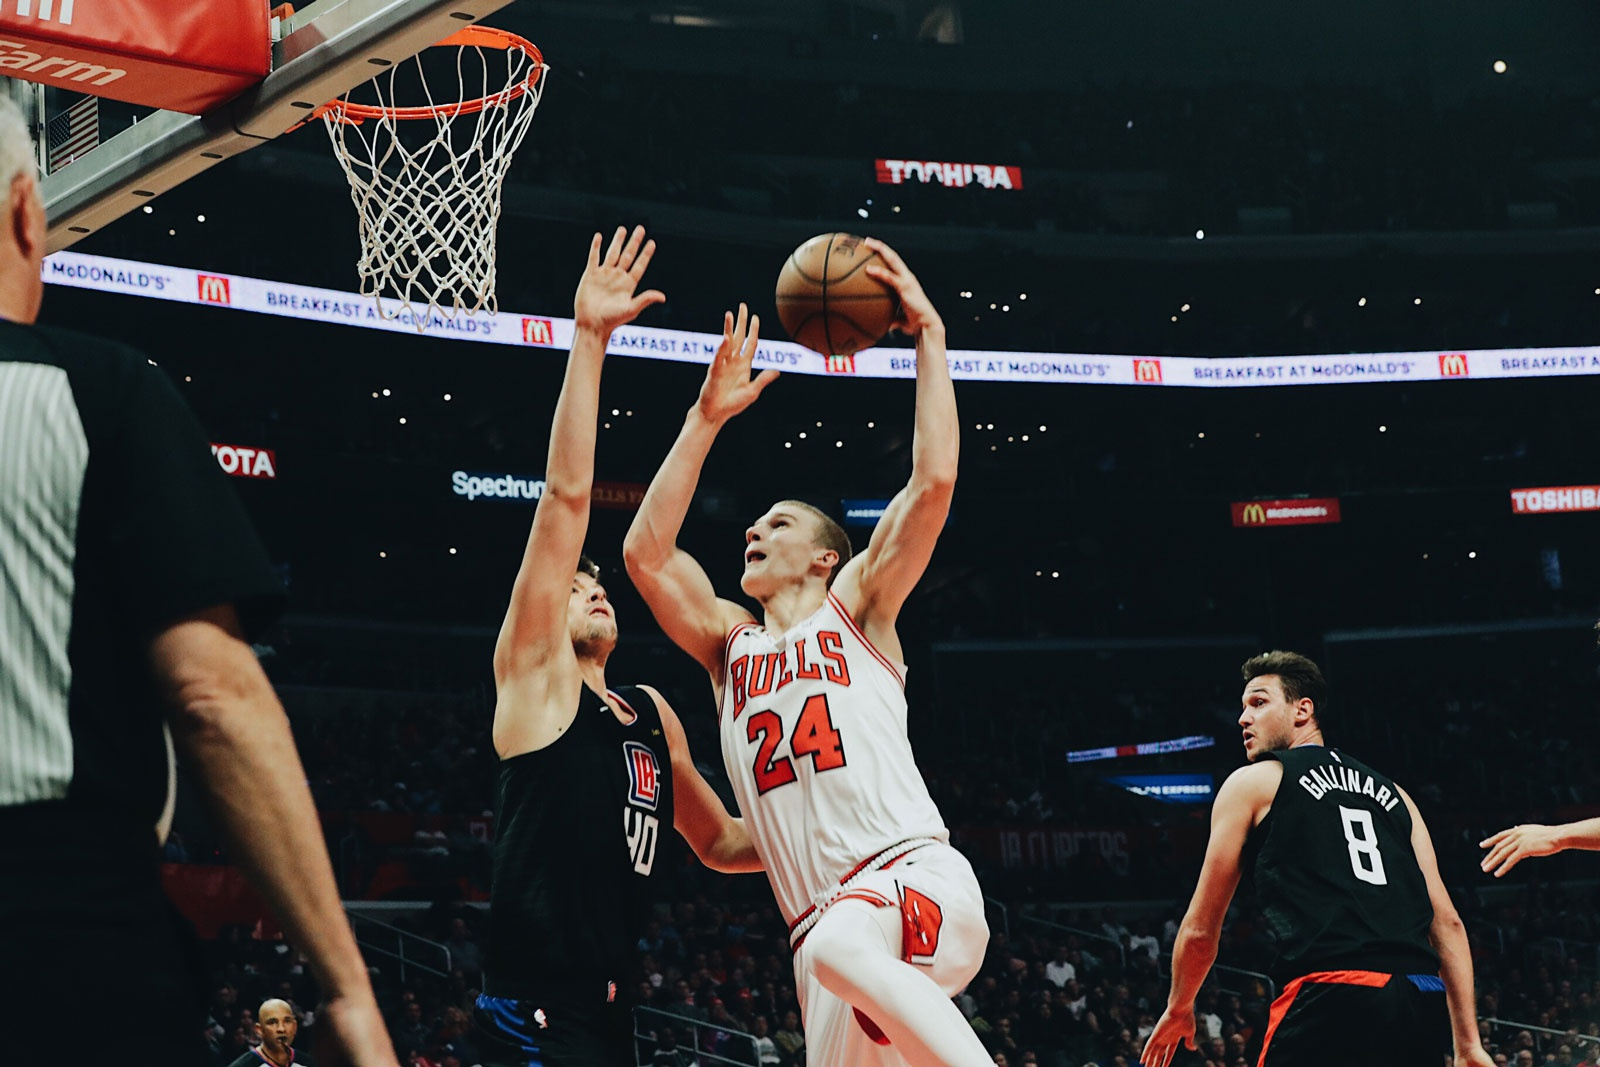 Lauri Markkanen shoots the ball